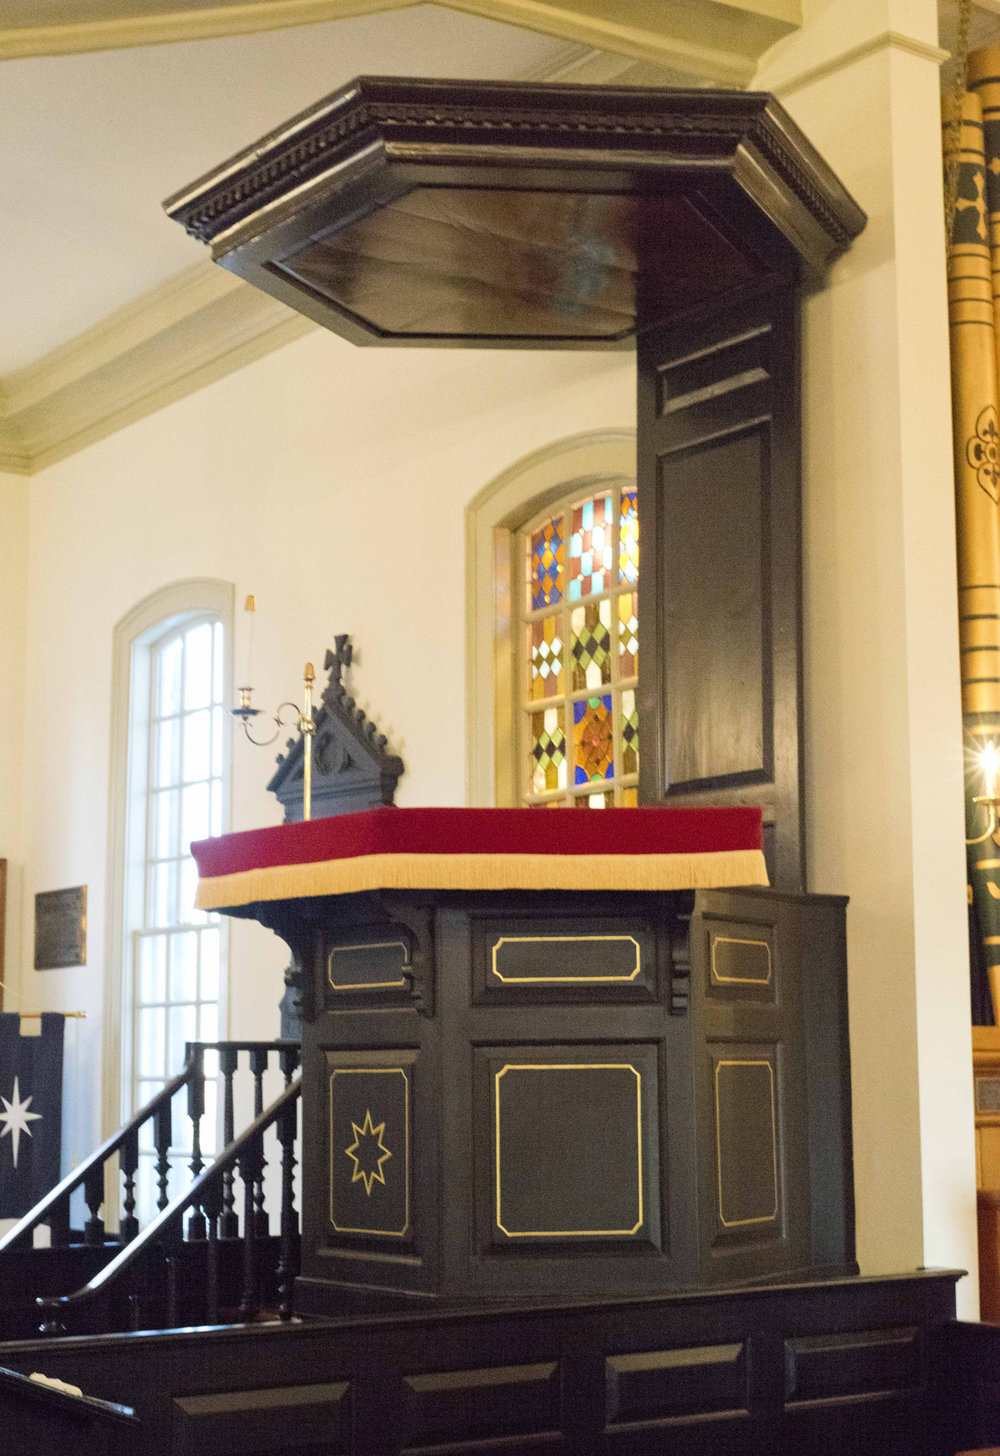 The sounding board which dates to 1741 is located above the pulpit inside St. John's.